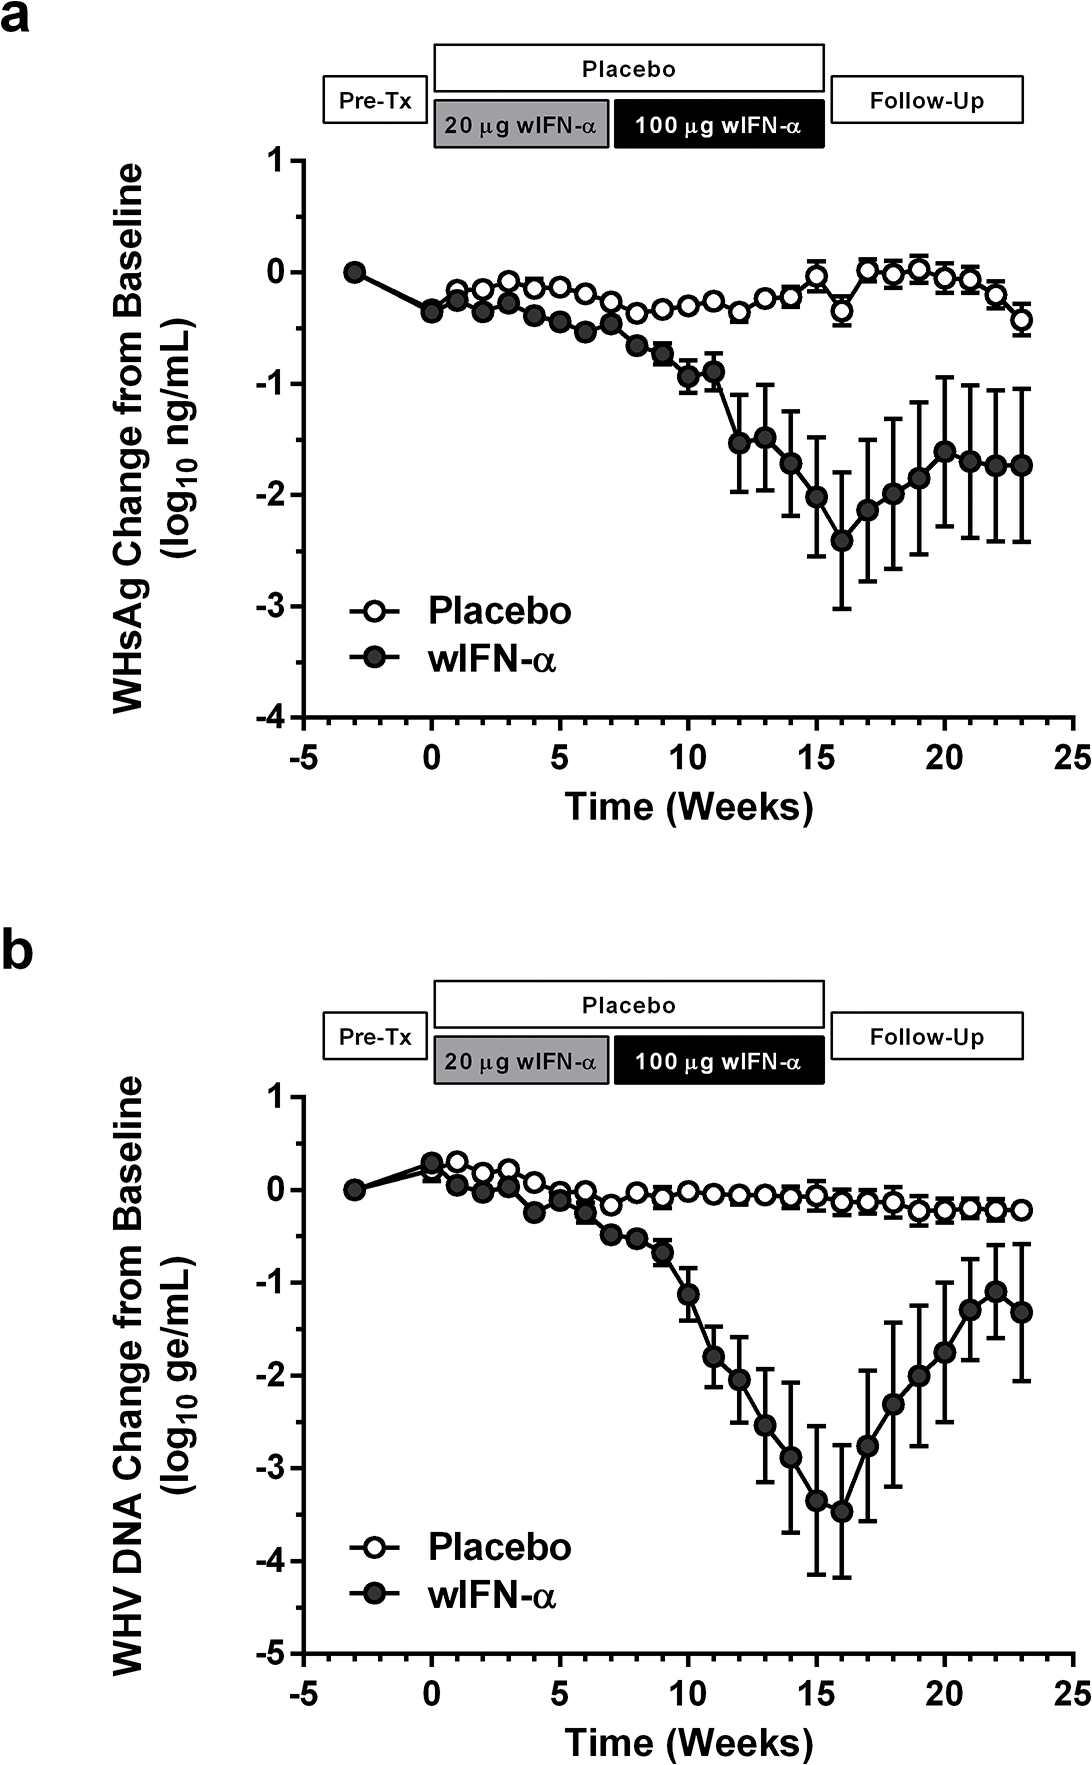 wIFN-α treatment of chronic WHV carriers induces suppression of serum antigenemia and viremia.